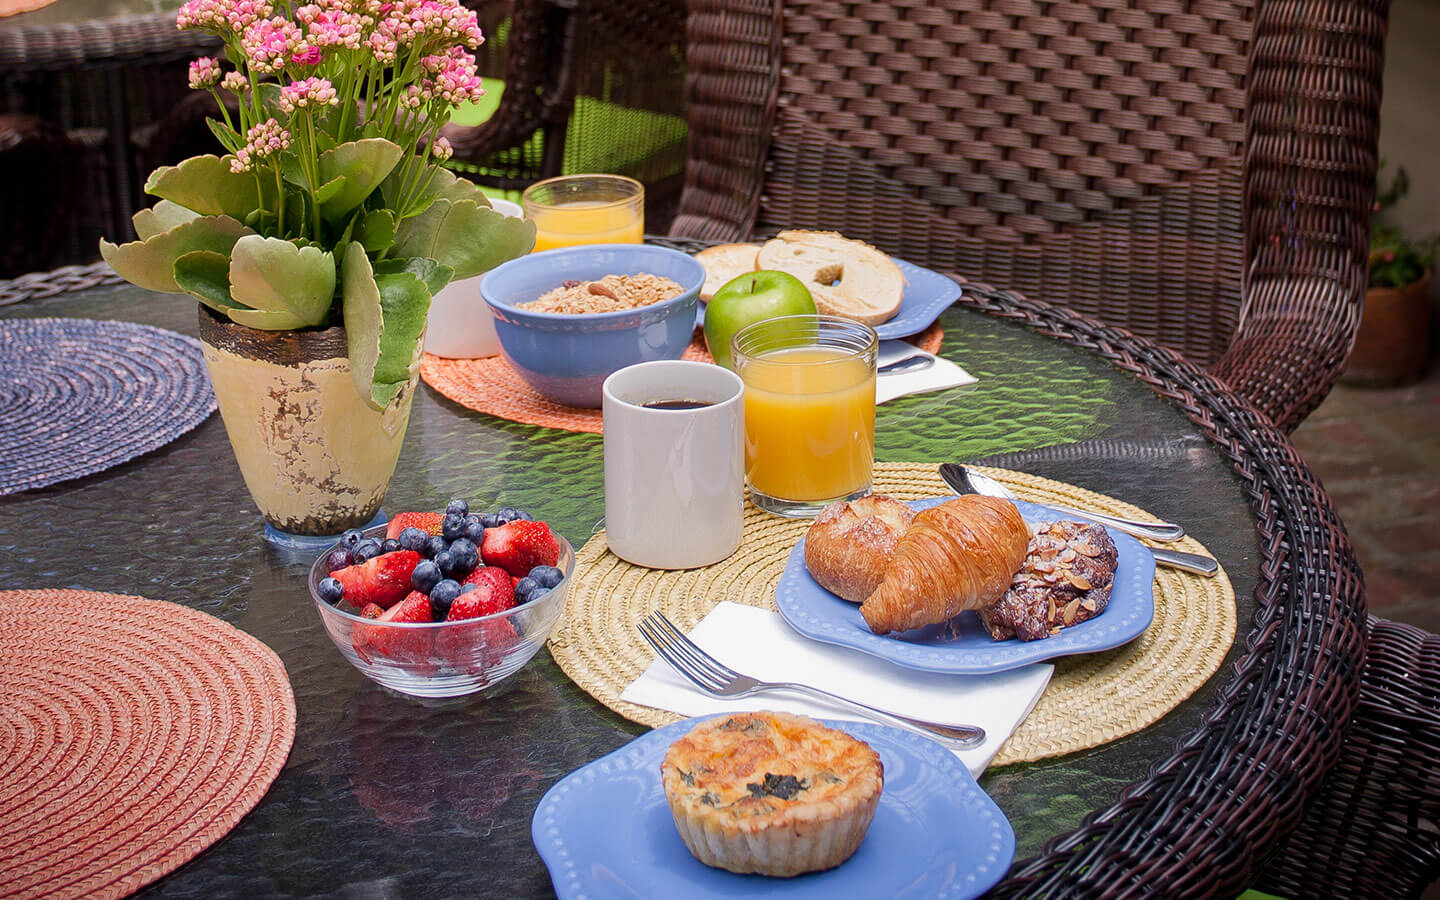 Breakfast on a table outdoors